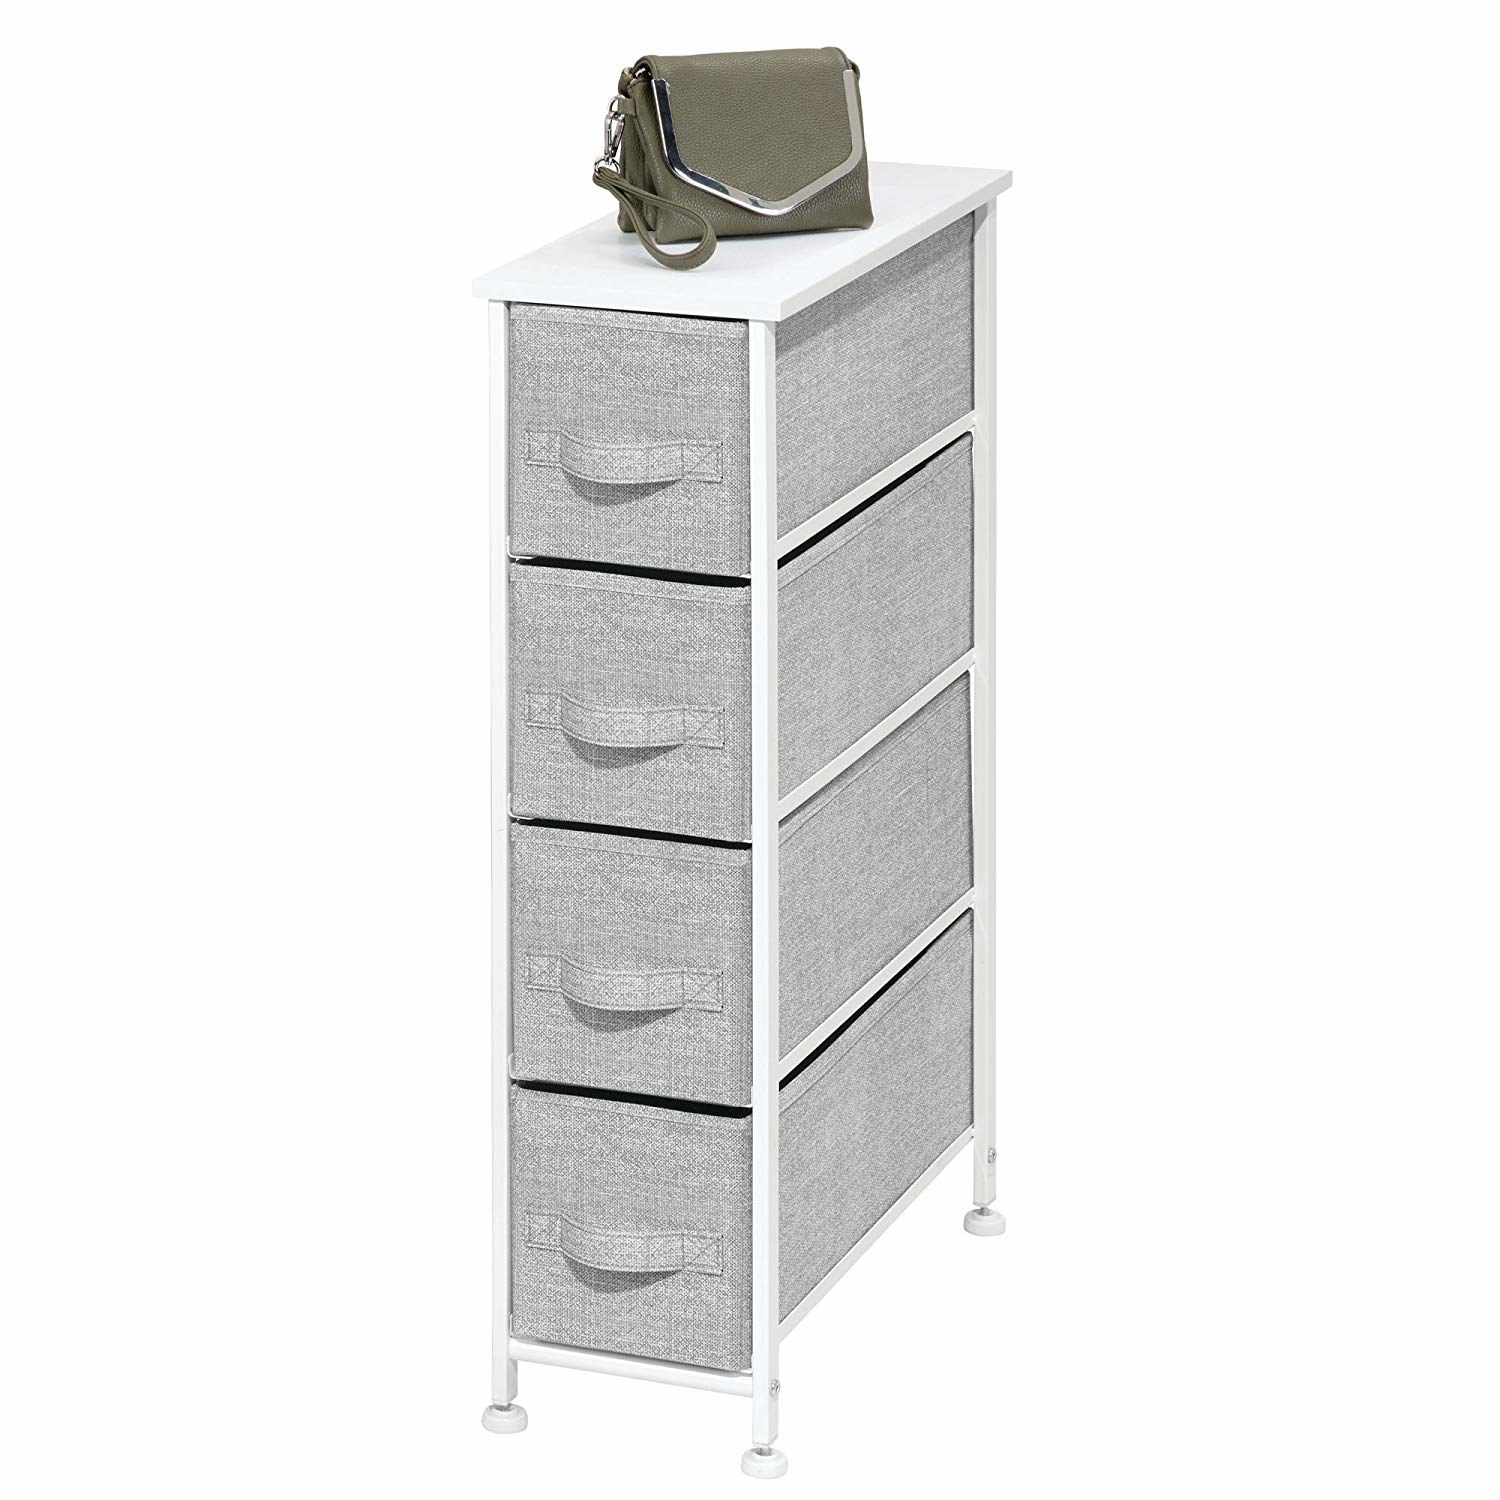 "Promising review: ""This is a great way to reduce clutter! It's a perfect storage solution for me. I put mine in bedroom between my bed and wall. I put it together in a flash, and the fabric bins are very nice. I love the neutral colors available. Plus, you can store a lot of stuff in a very small space!"" —RaySing4CarrotsGet it from Amazon for $49.99 (available in four colors)."